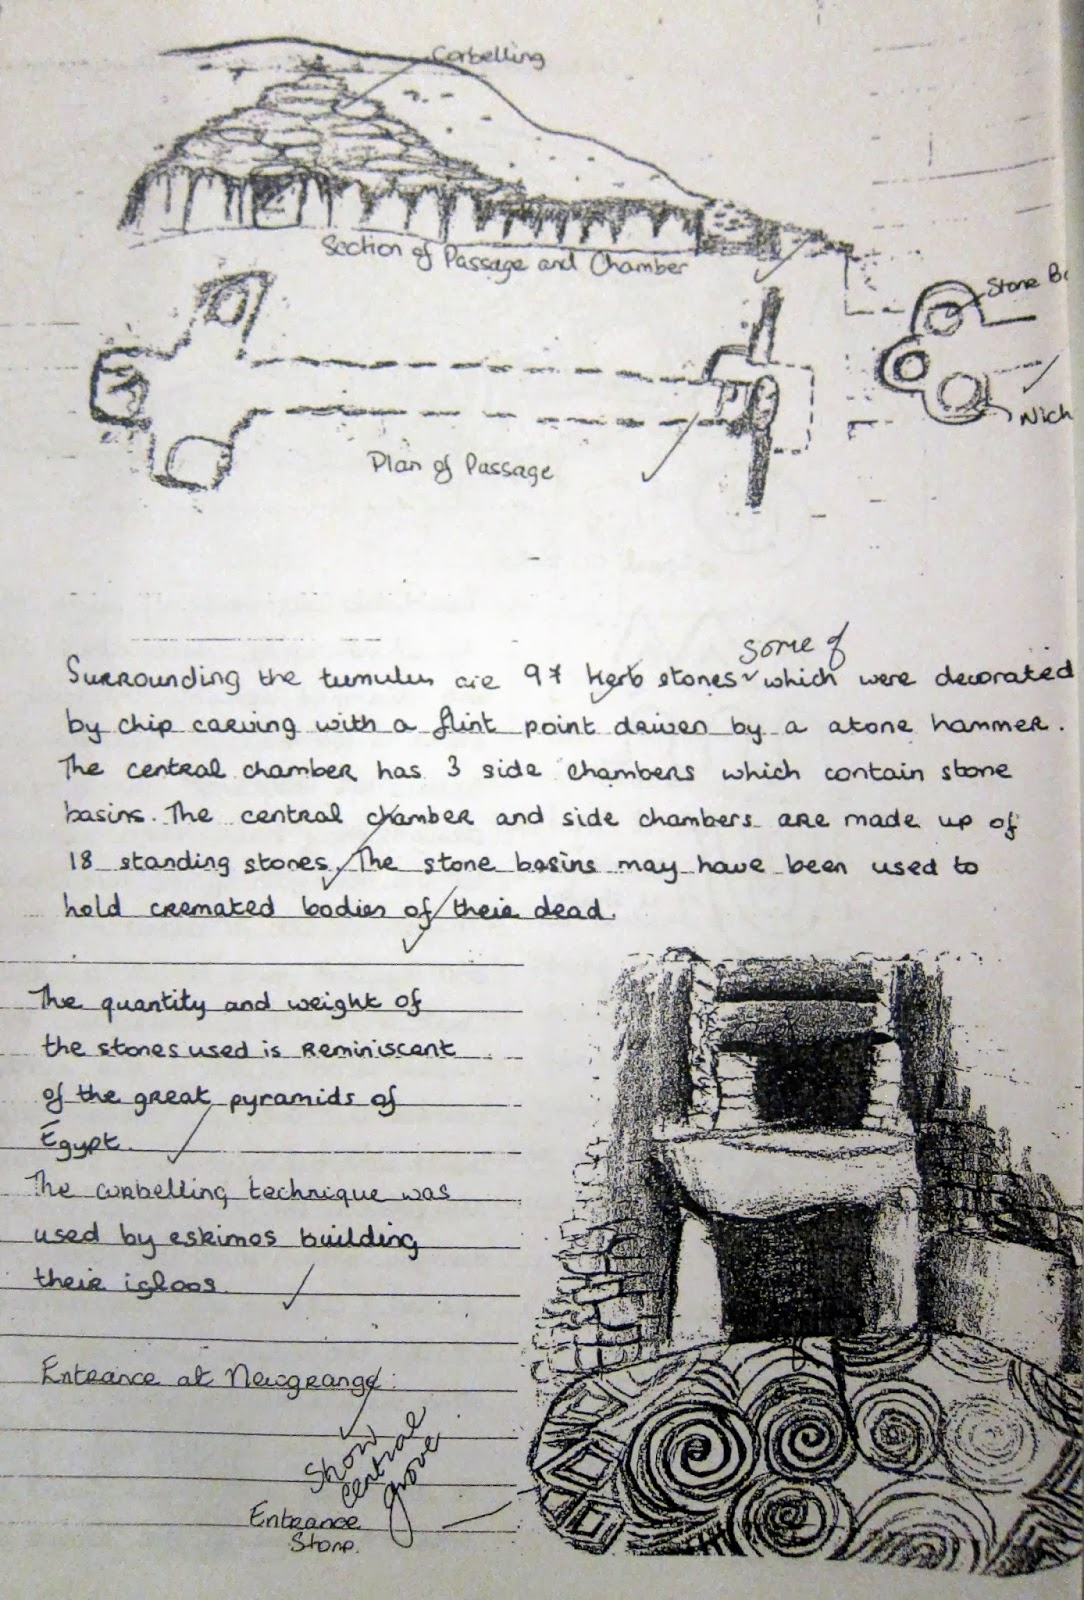 newgrange essay art history Newgrange essay art history, texas state university creative writing, what can a creative writing major do by on march 18, 2018 in updates • 0 comments.